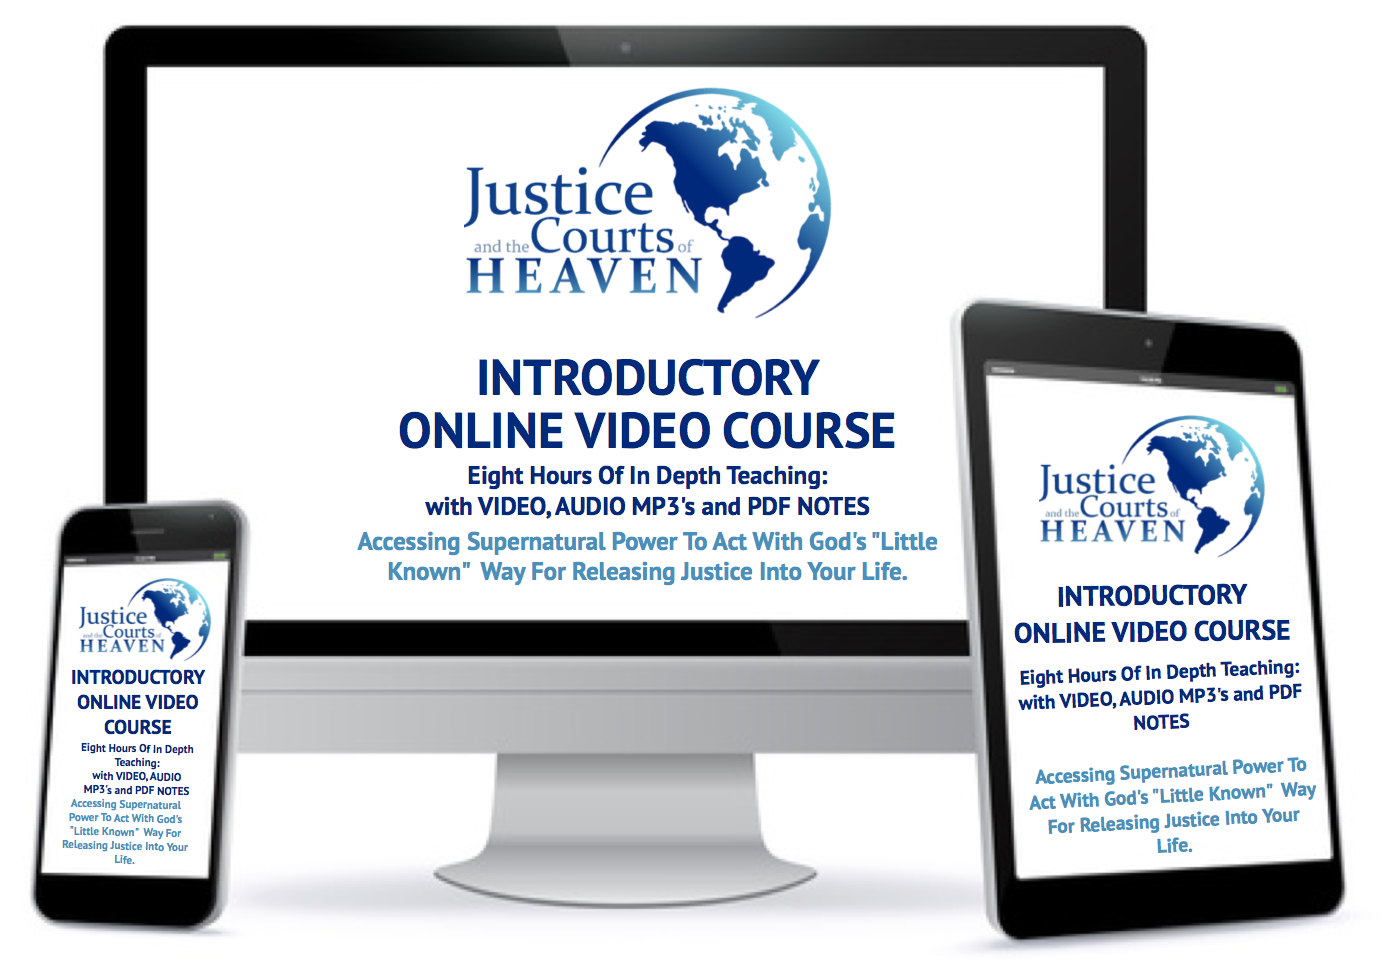 Justice and the Courts of Heaven Basic Course